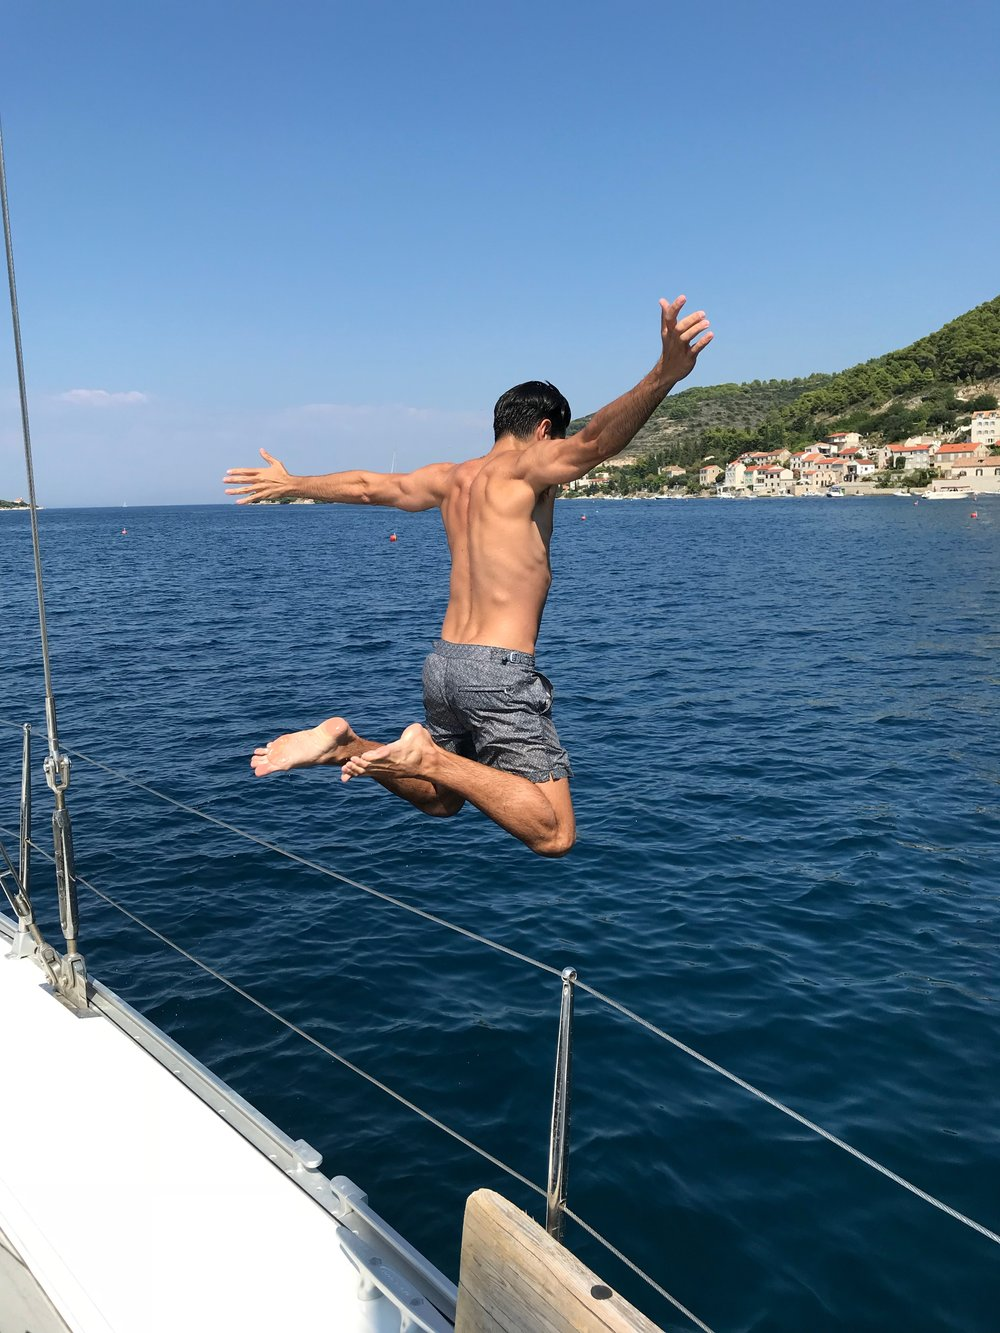 Designer jumping off boat into sea